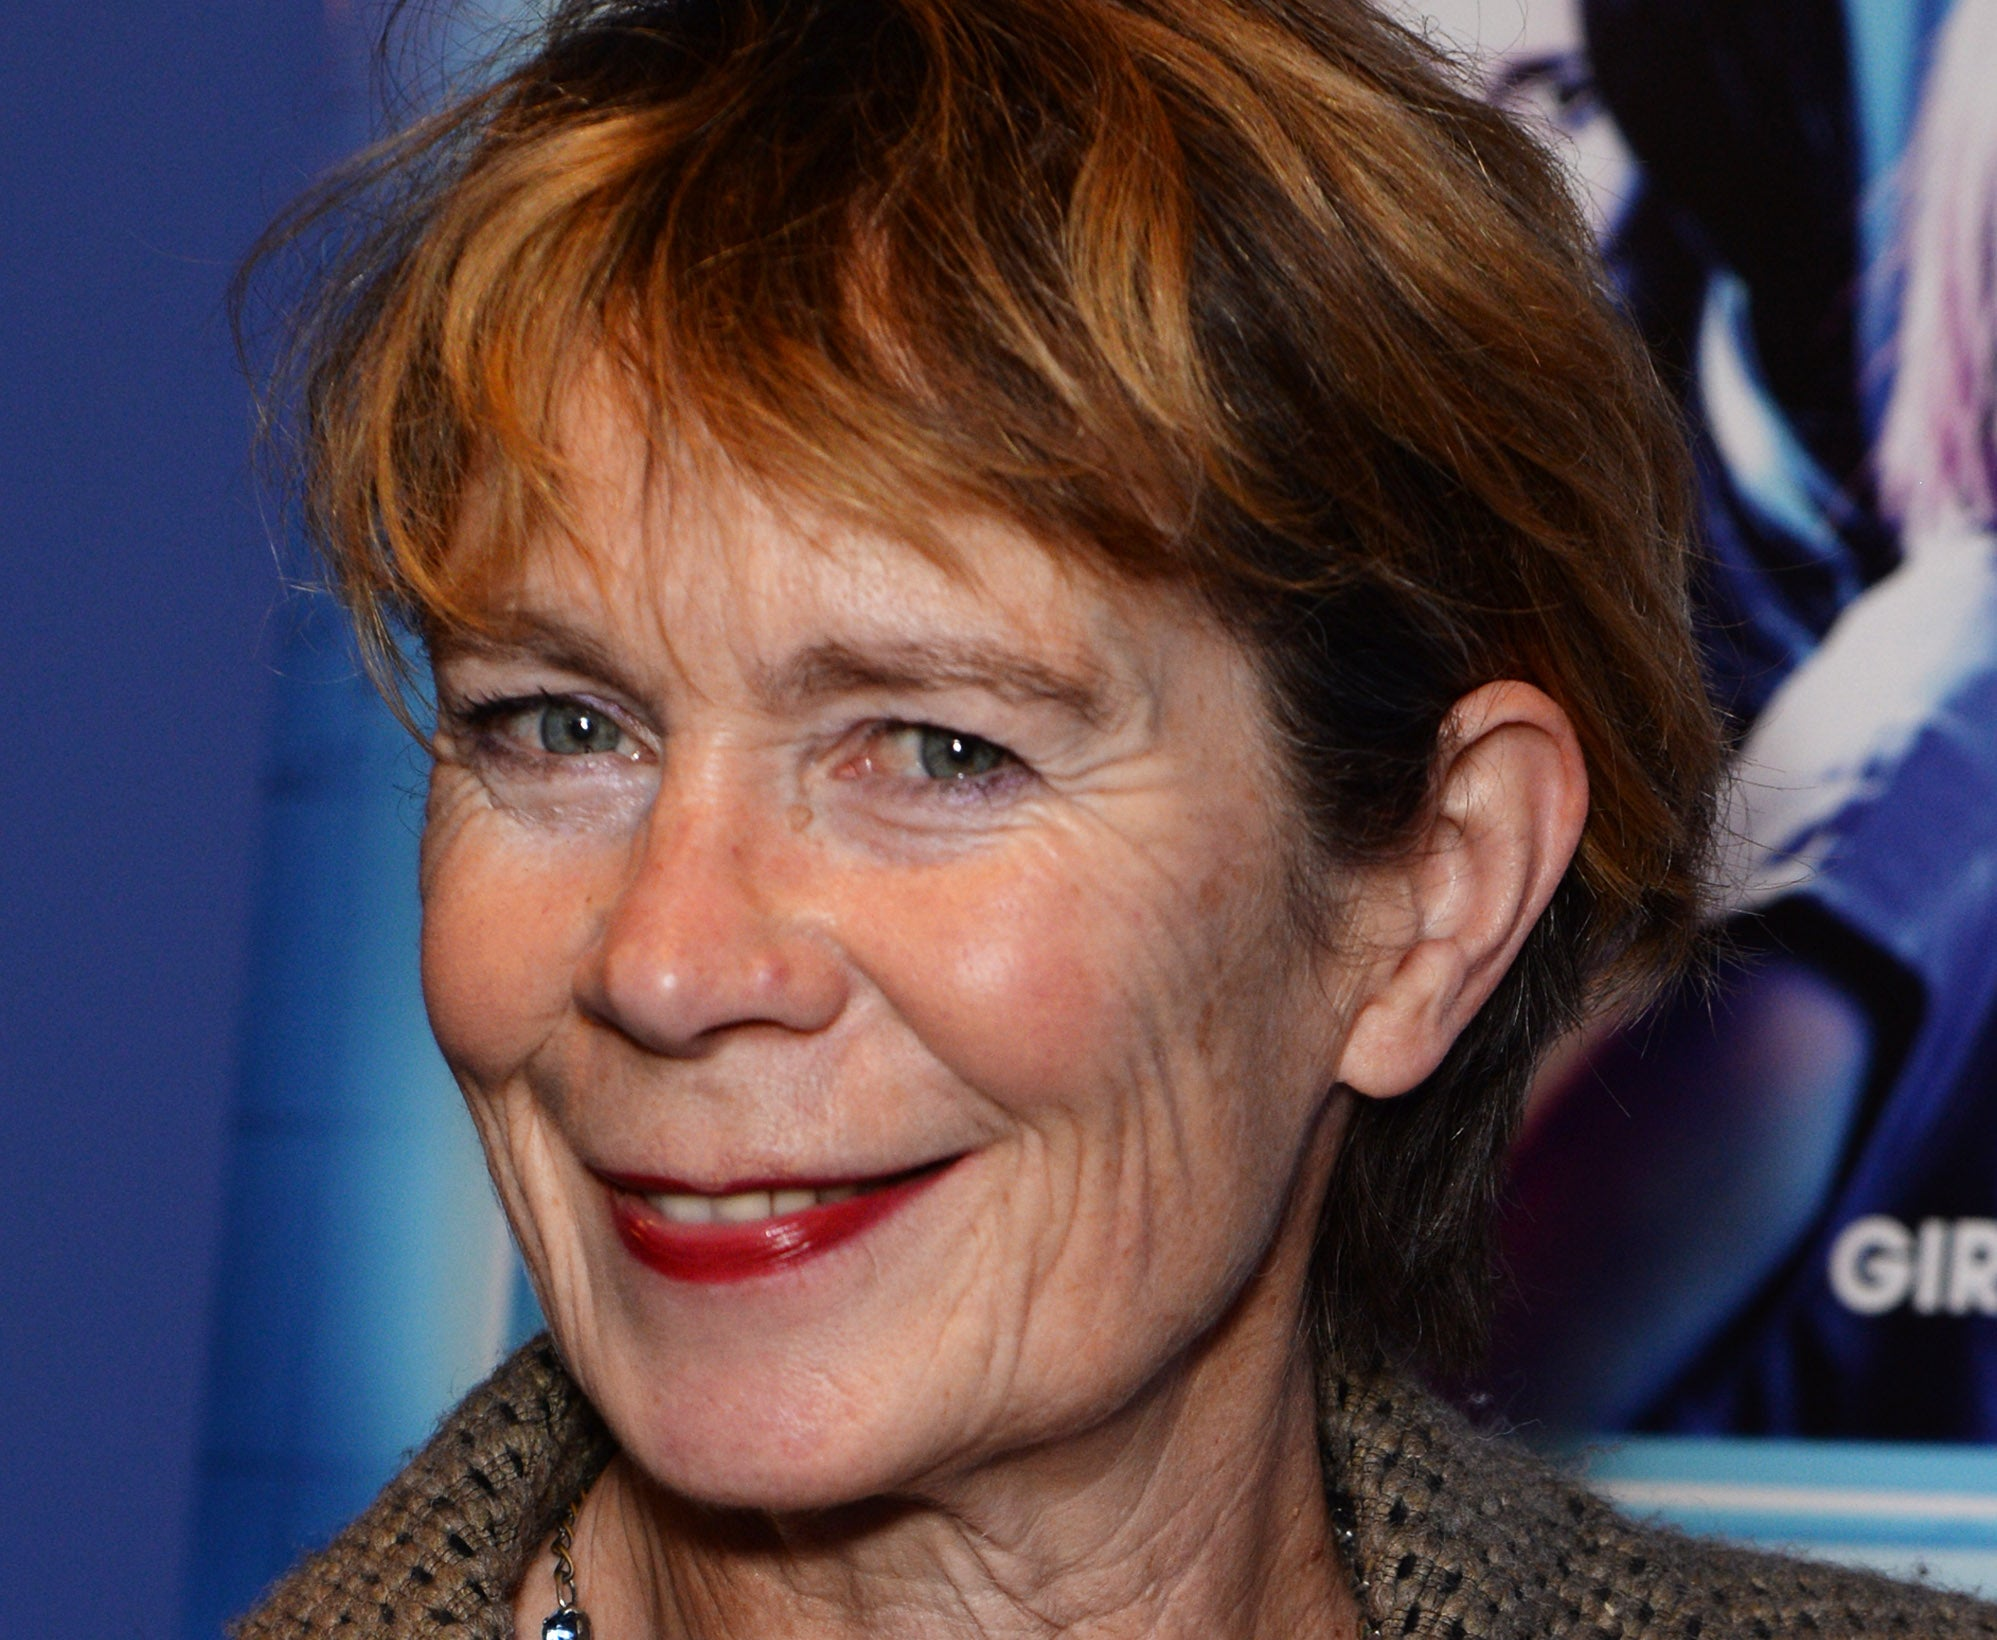 Second Best Exotic Marigold Hotel's Celia Imrie on Hollywood beauties 'who ruin themselves' | News | Culture | The Independent - Celia-Imrie452277599